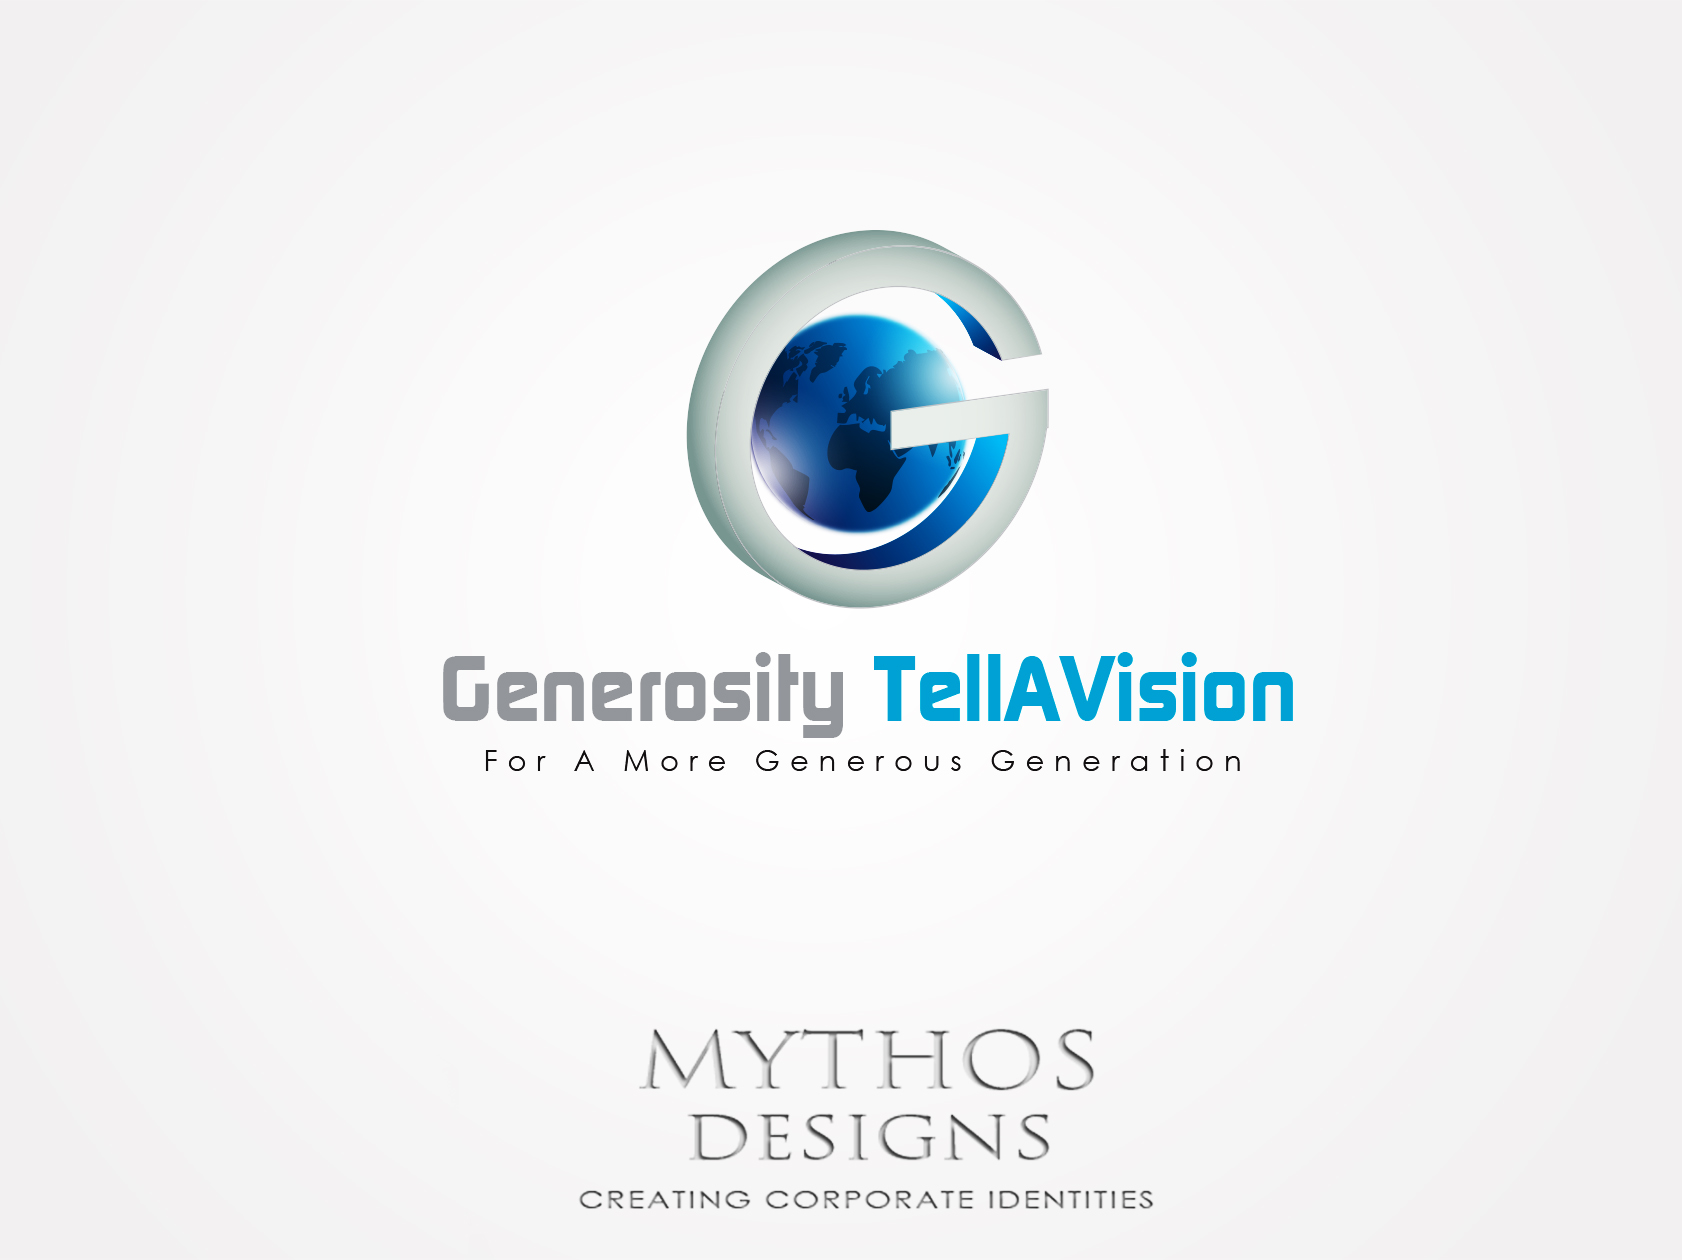 Logo Design by Mythos Designs - Entry No. 42 in the Logo Design Contest Artistic Logo Design for Generosity TellAVision.